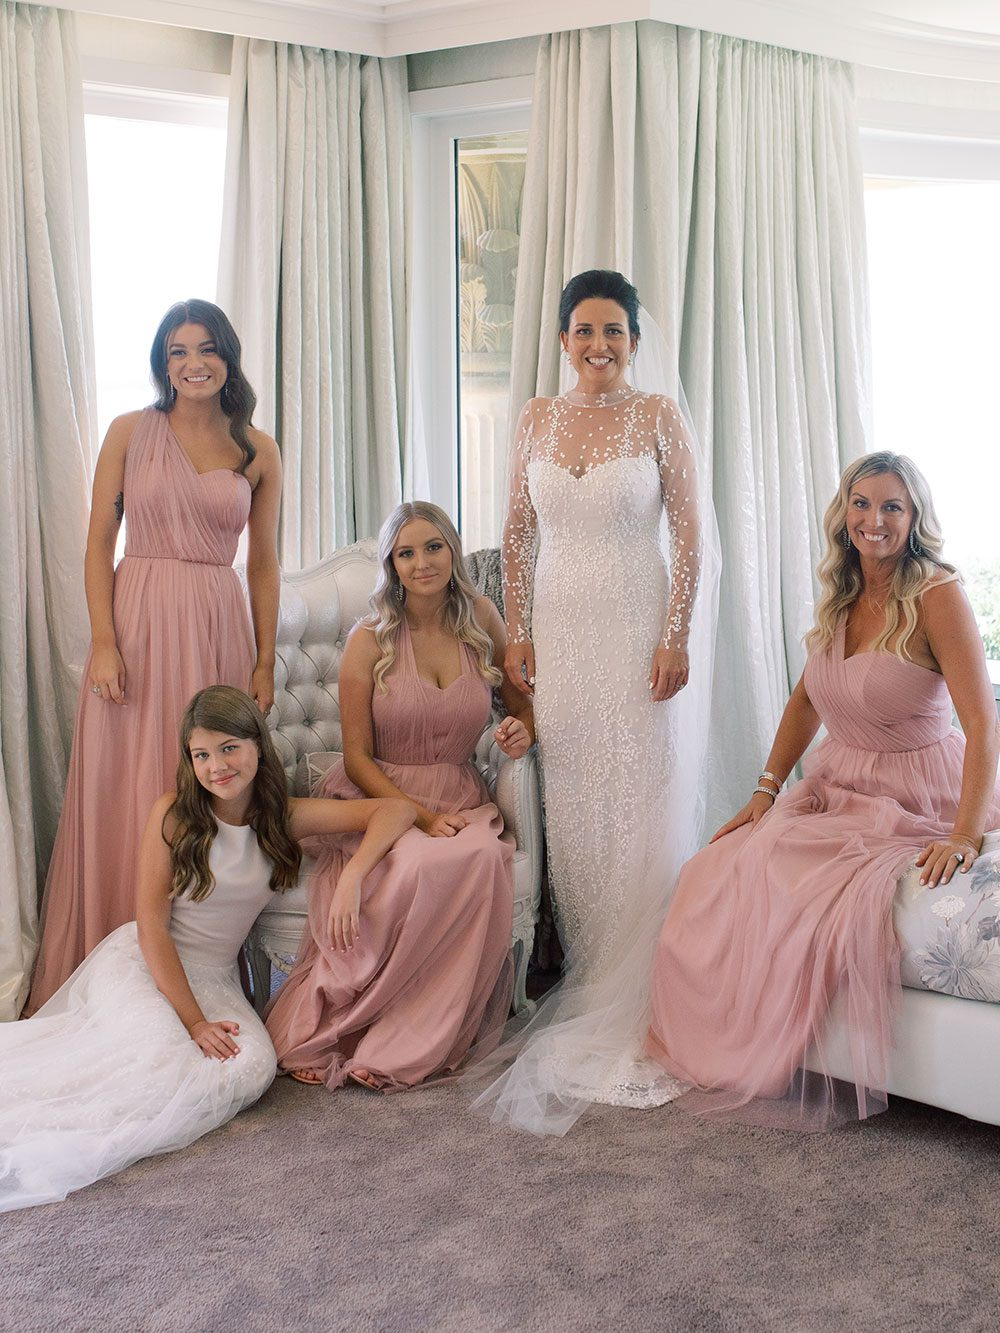 Bride wearing bespoke gown by Auckland wedding dress designer Vinka Design, with a high neckline and delicate spotted embroidery - bride and bridesmaids at window